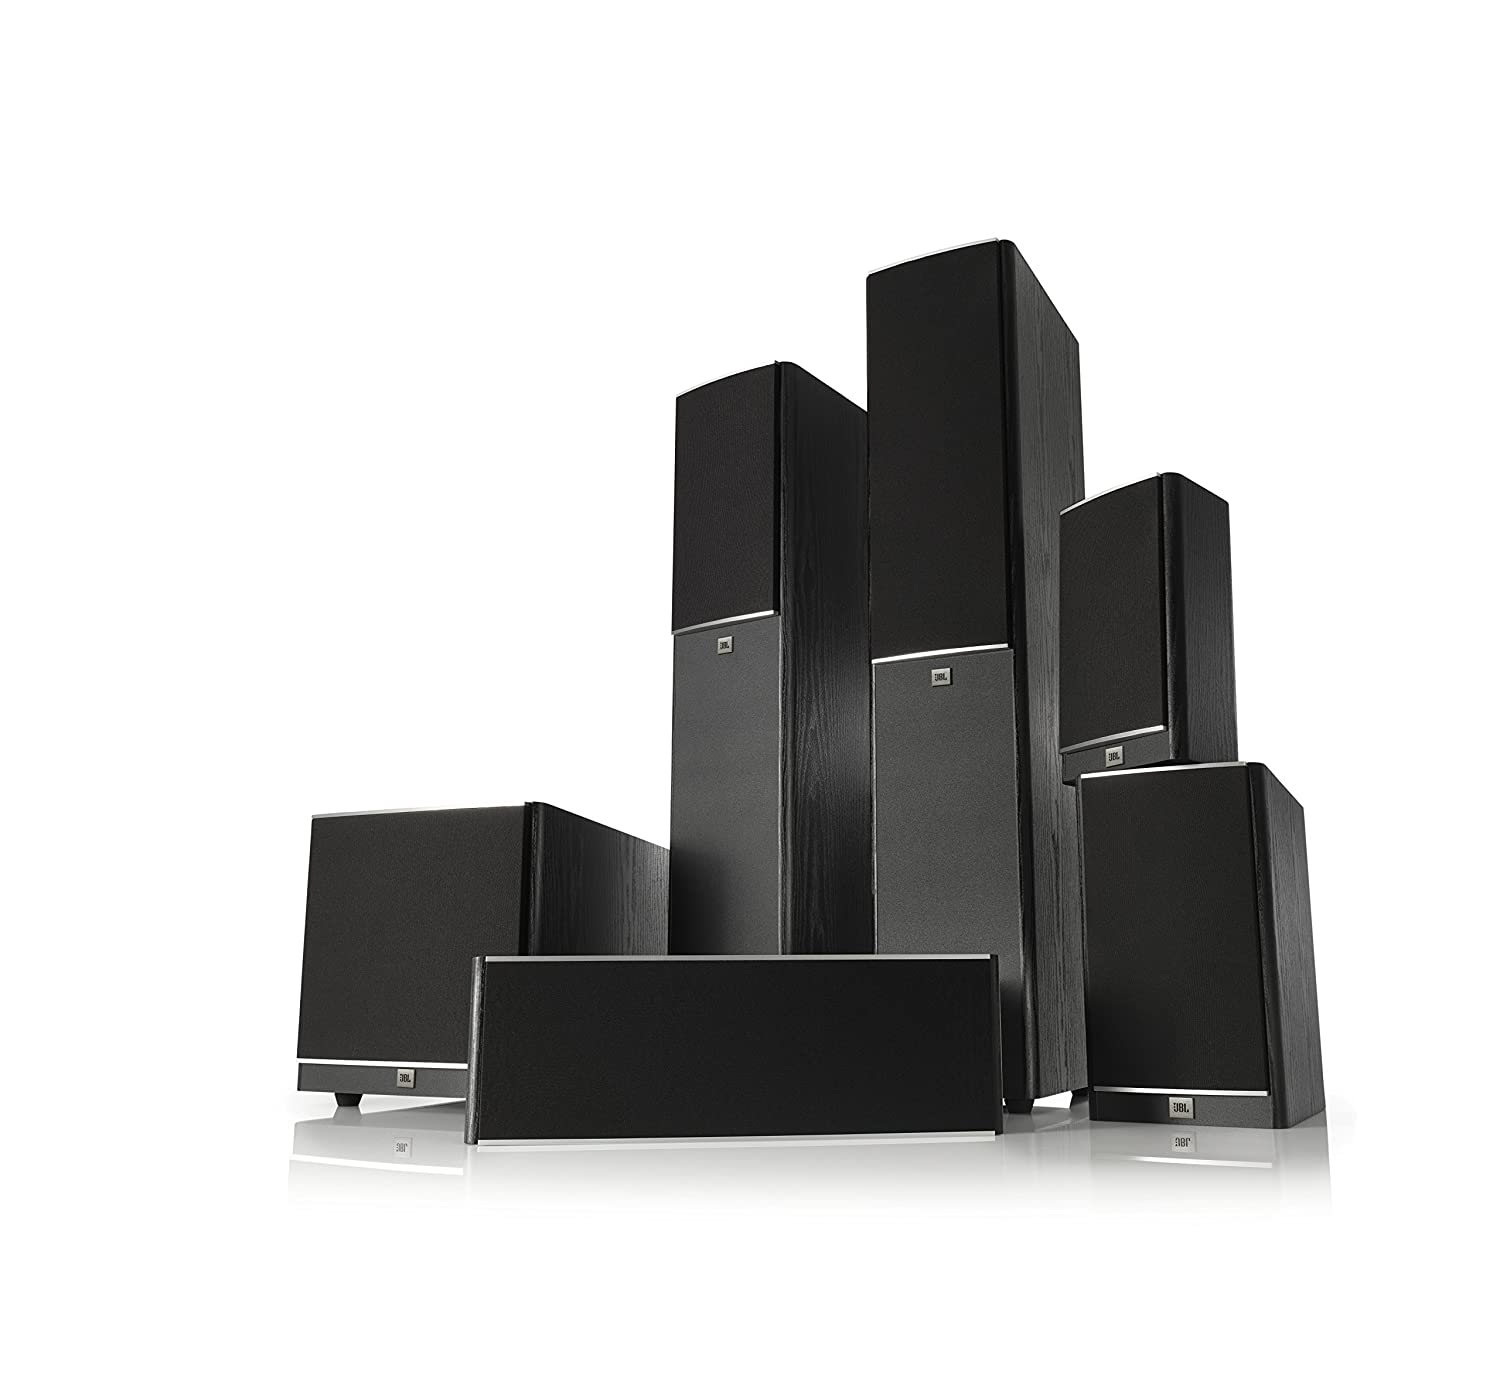 Jbl Arena 130 Black 2 Way 7 Inch Bookshelf Loudspeakers Us Power Cableusa Cableamerica Cable Bk Industrial Home Audio Theater